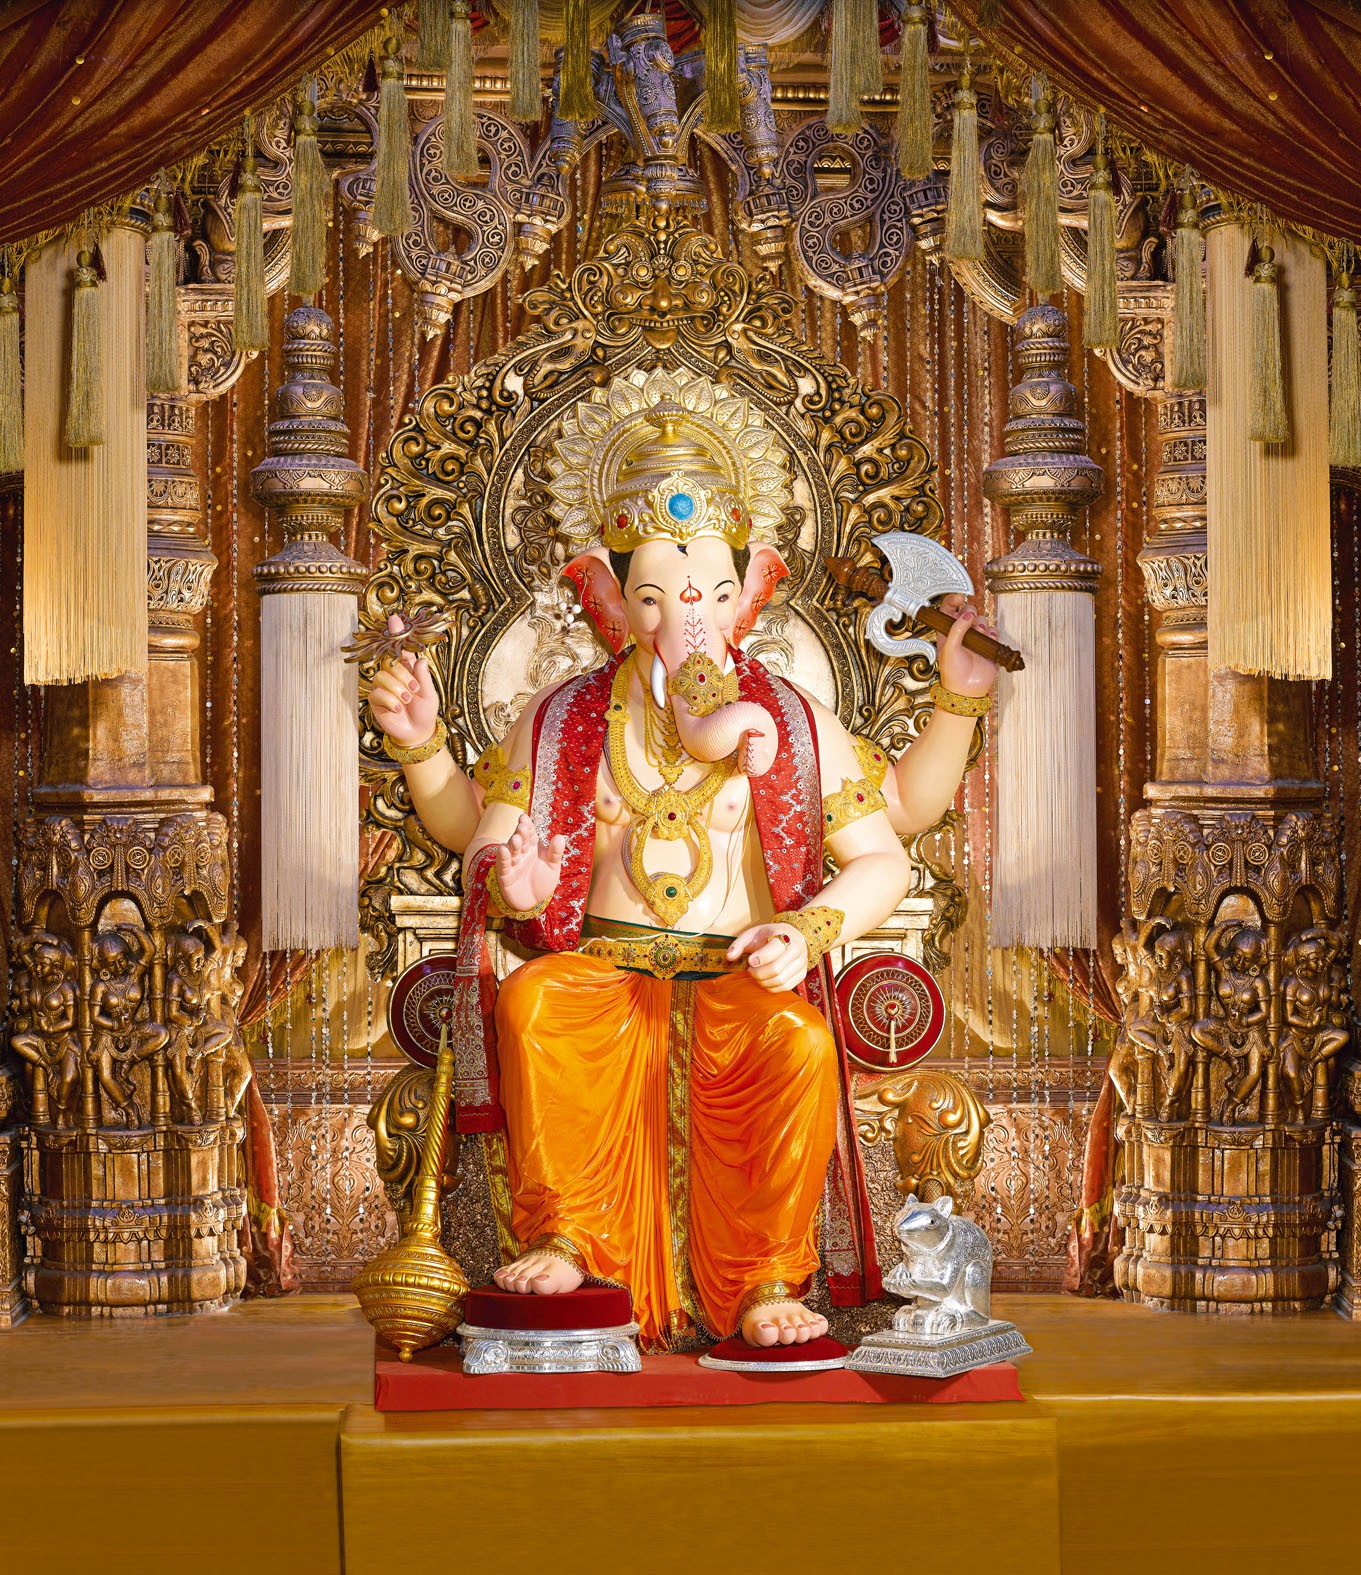 Hd wallpaper ganpati - Hd Wallpaper Ganpati 28